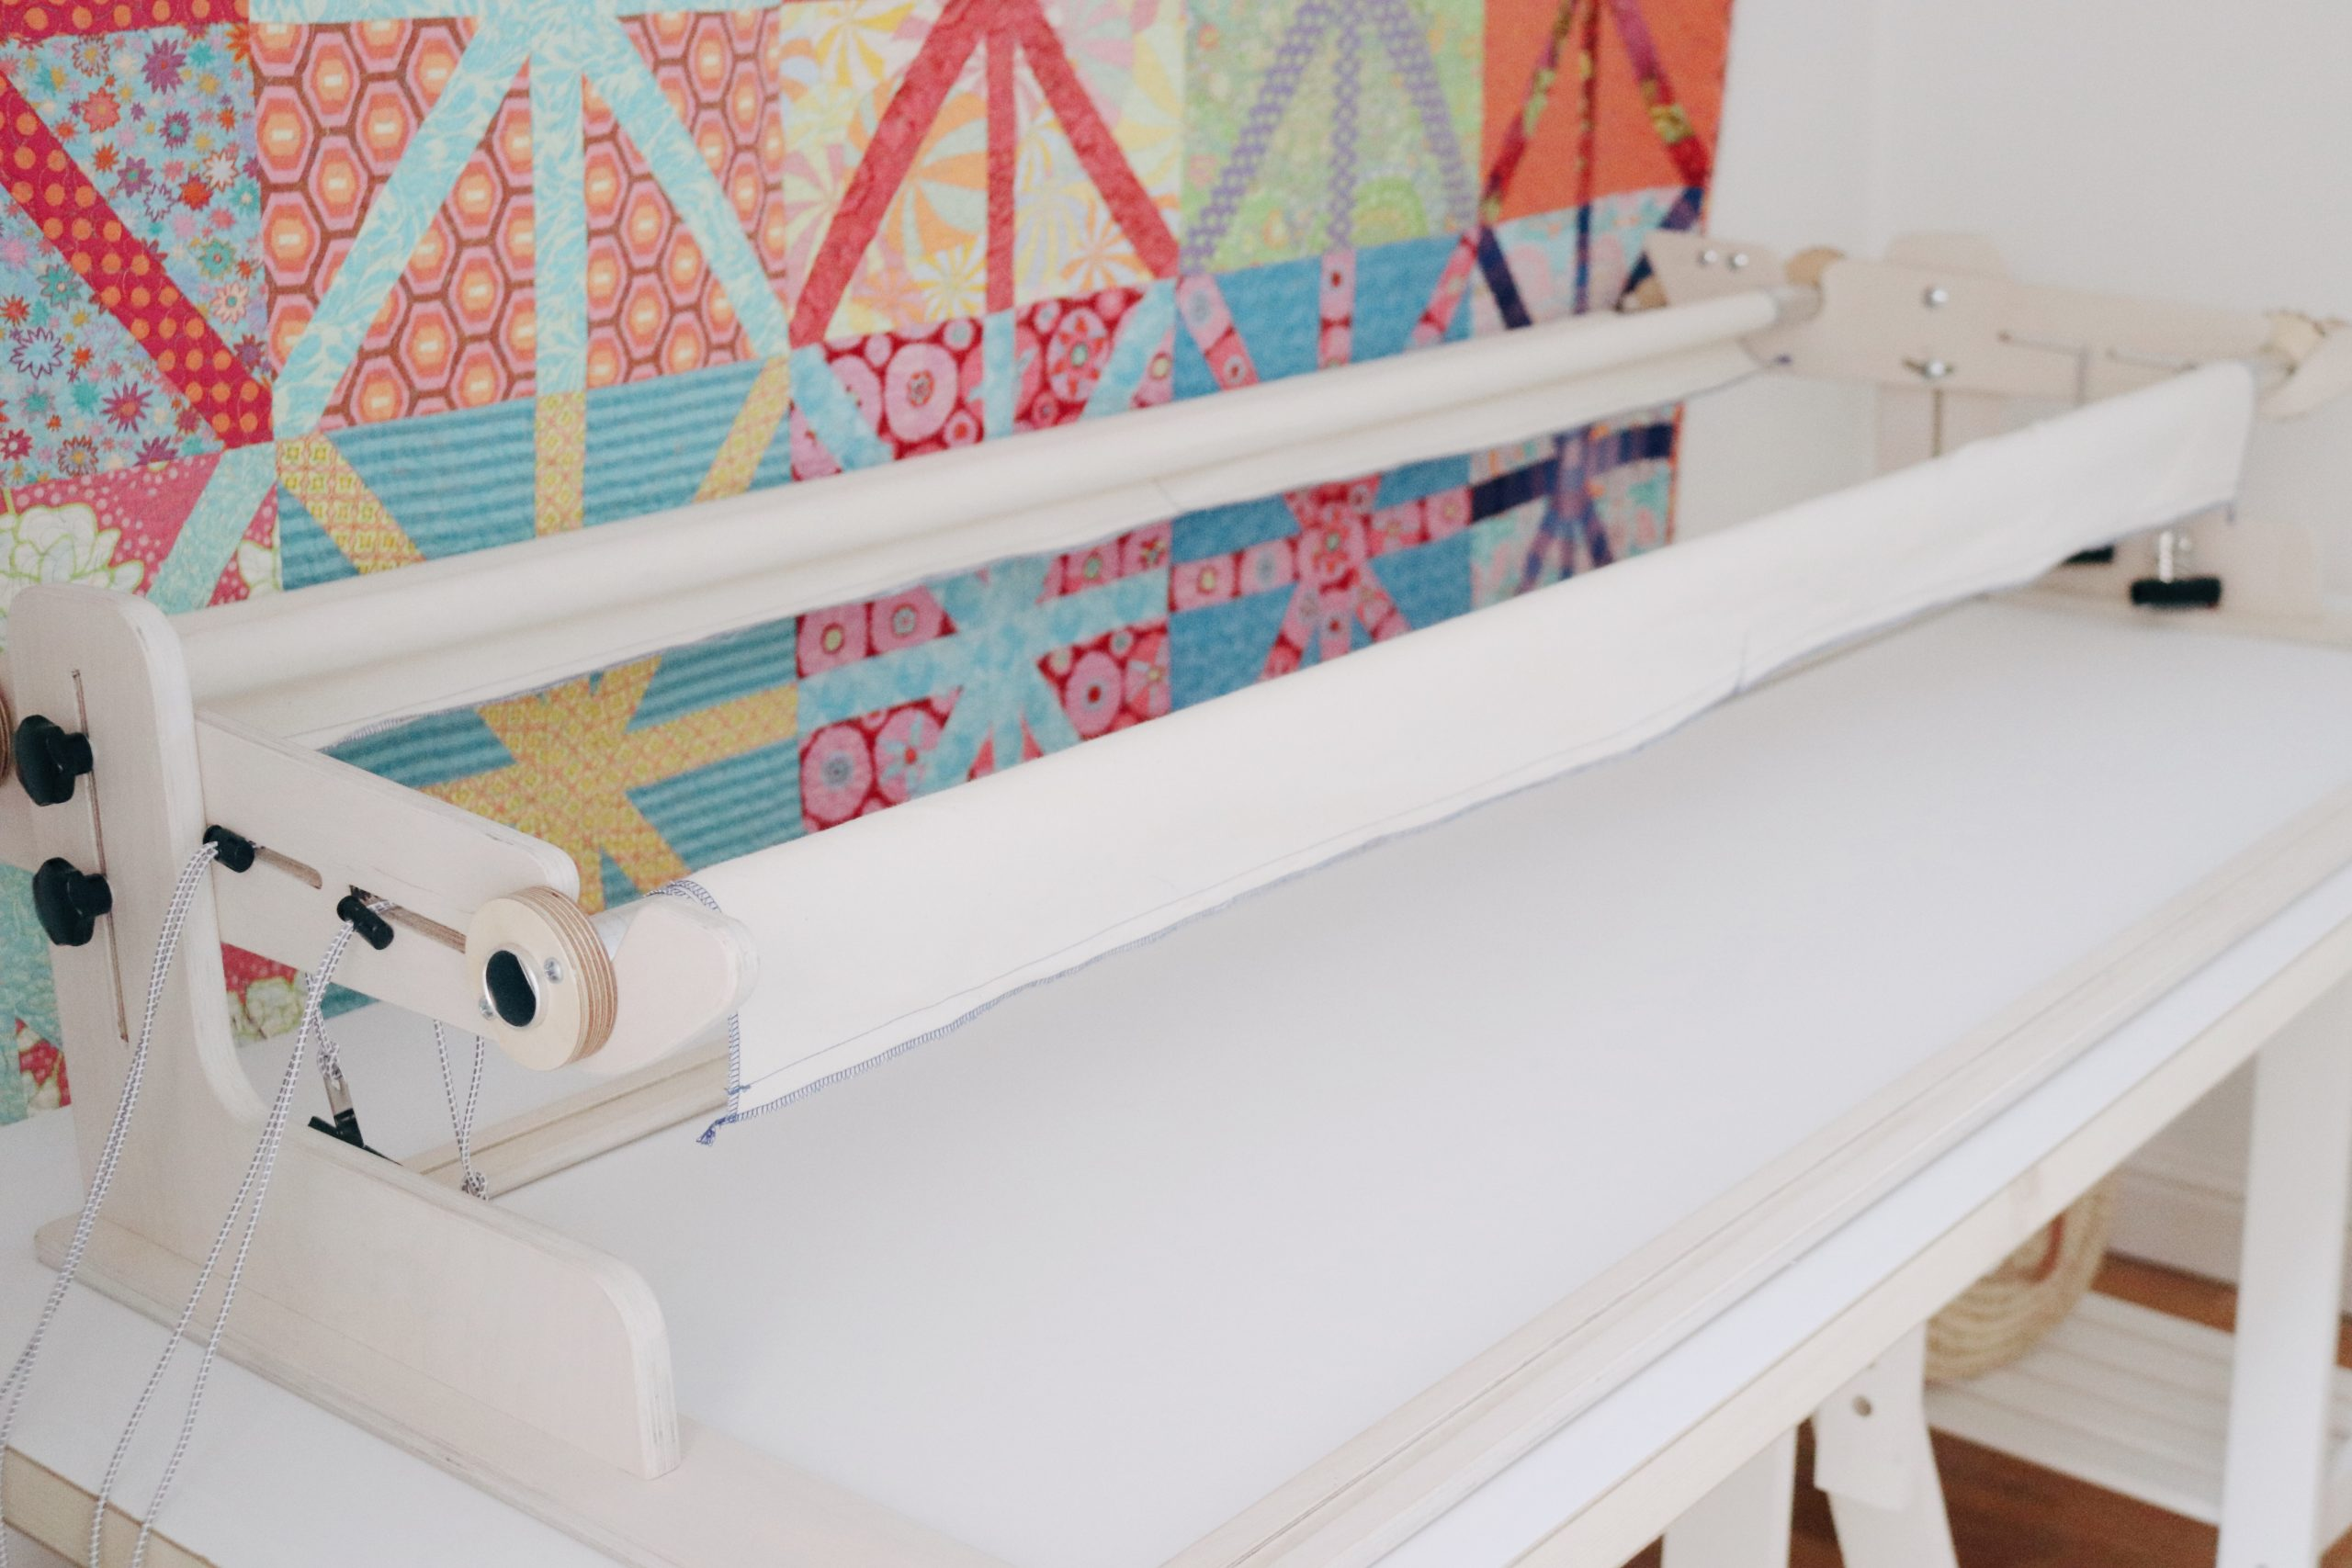 Poles all have same thickness, regardless of quilting frame length.